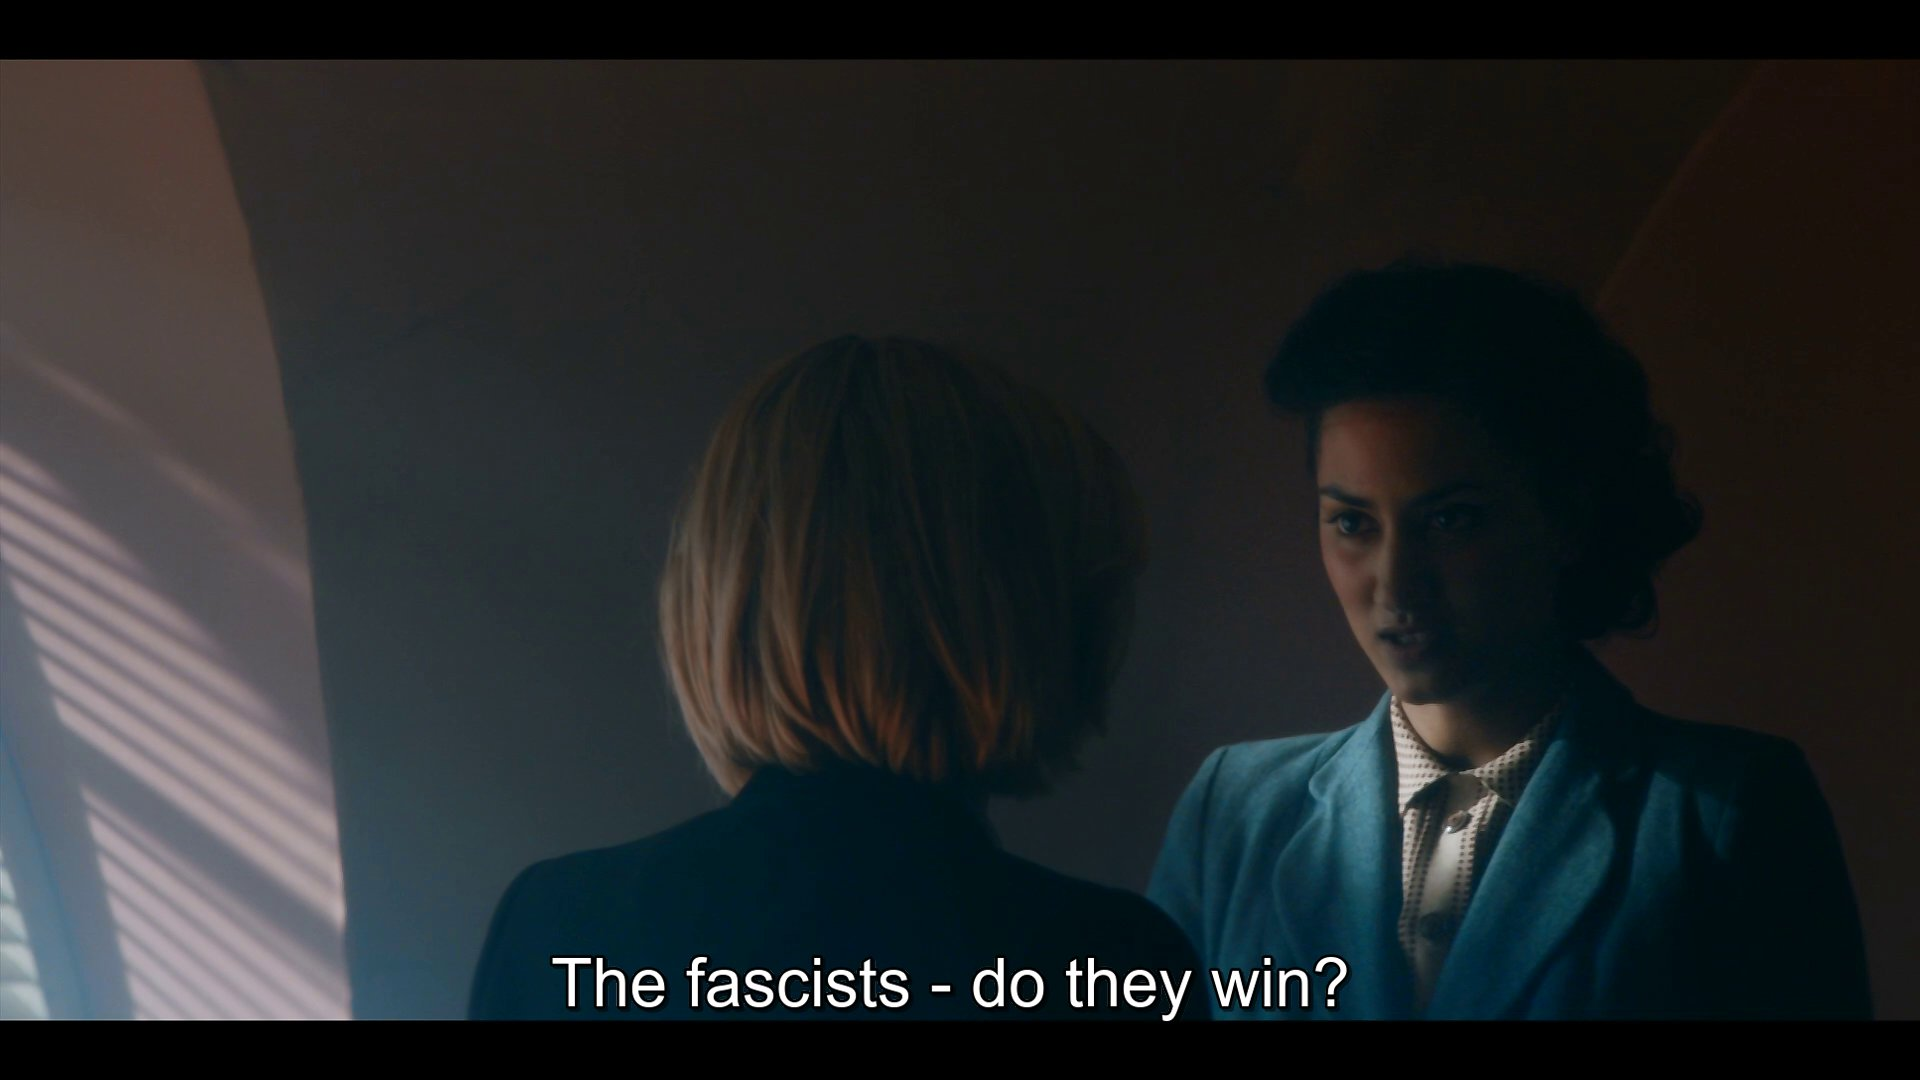 The fascist - do the win?